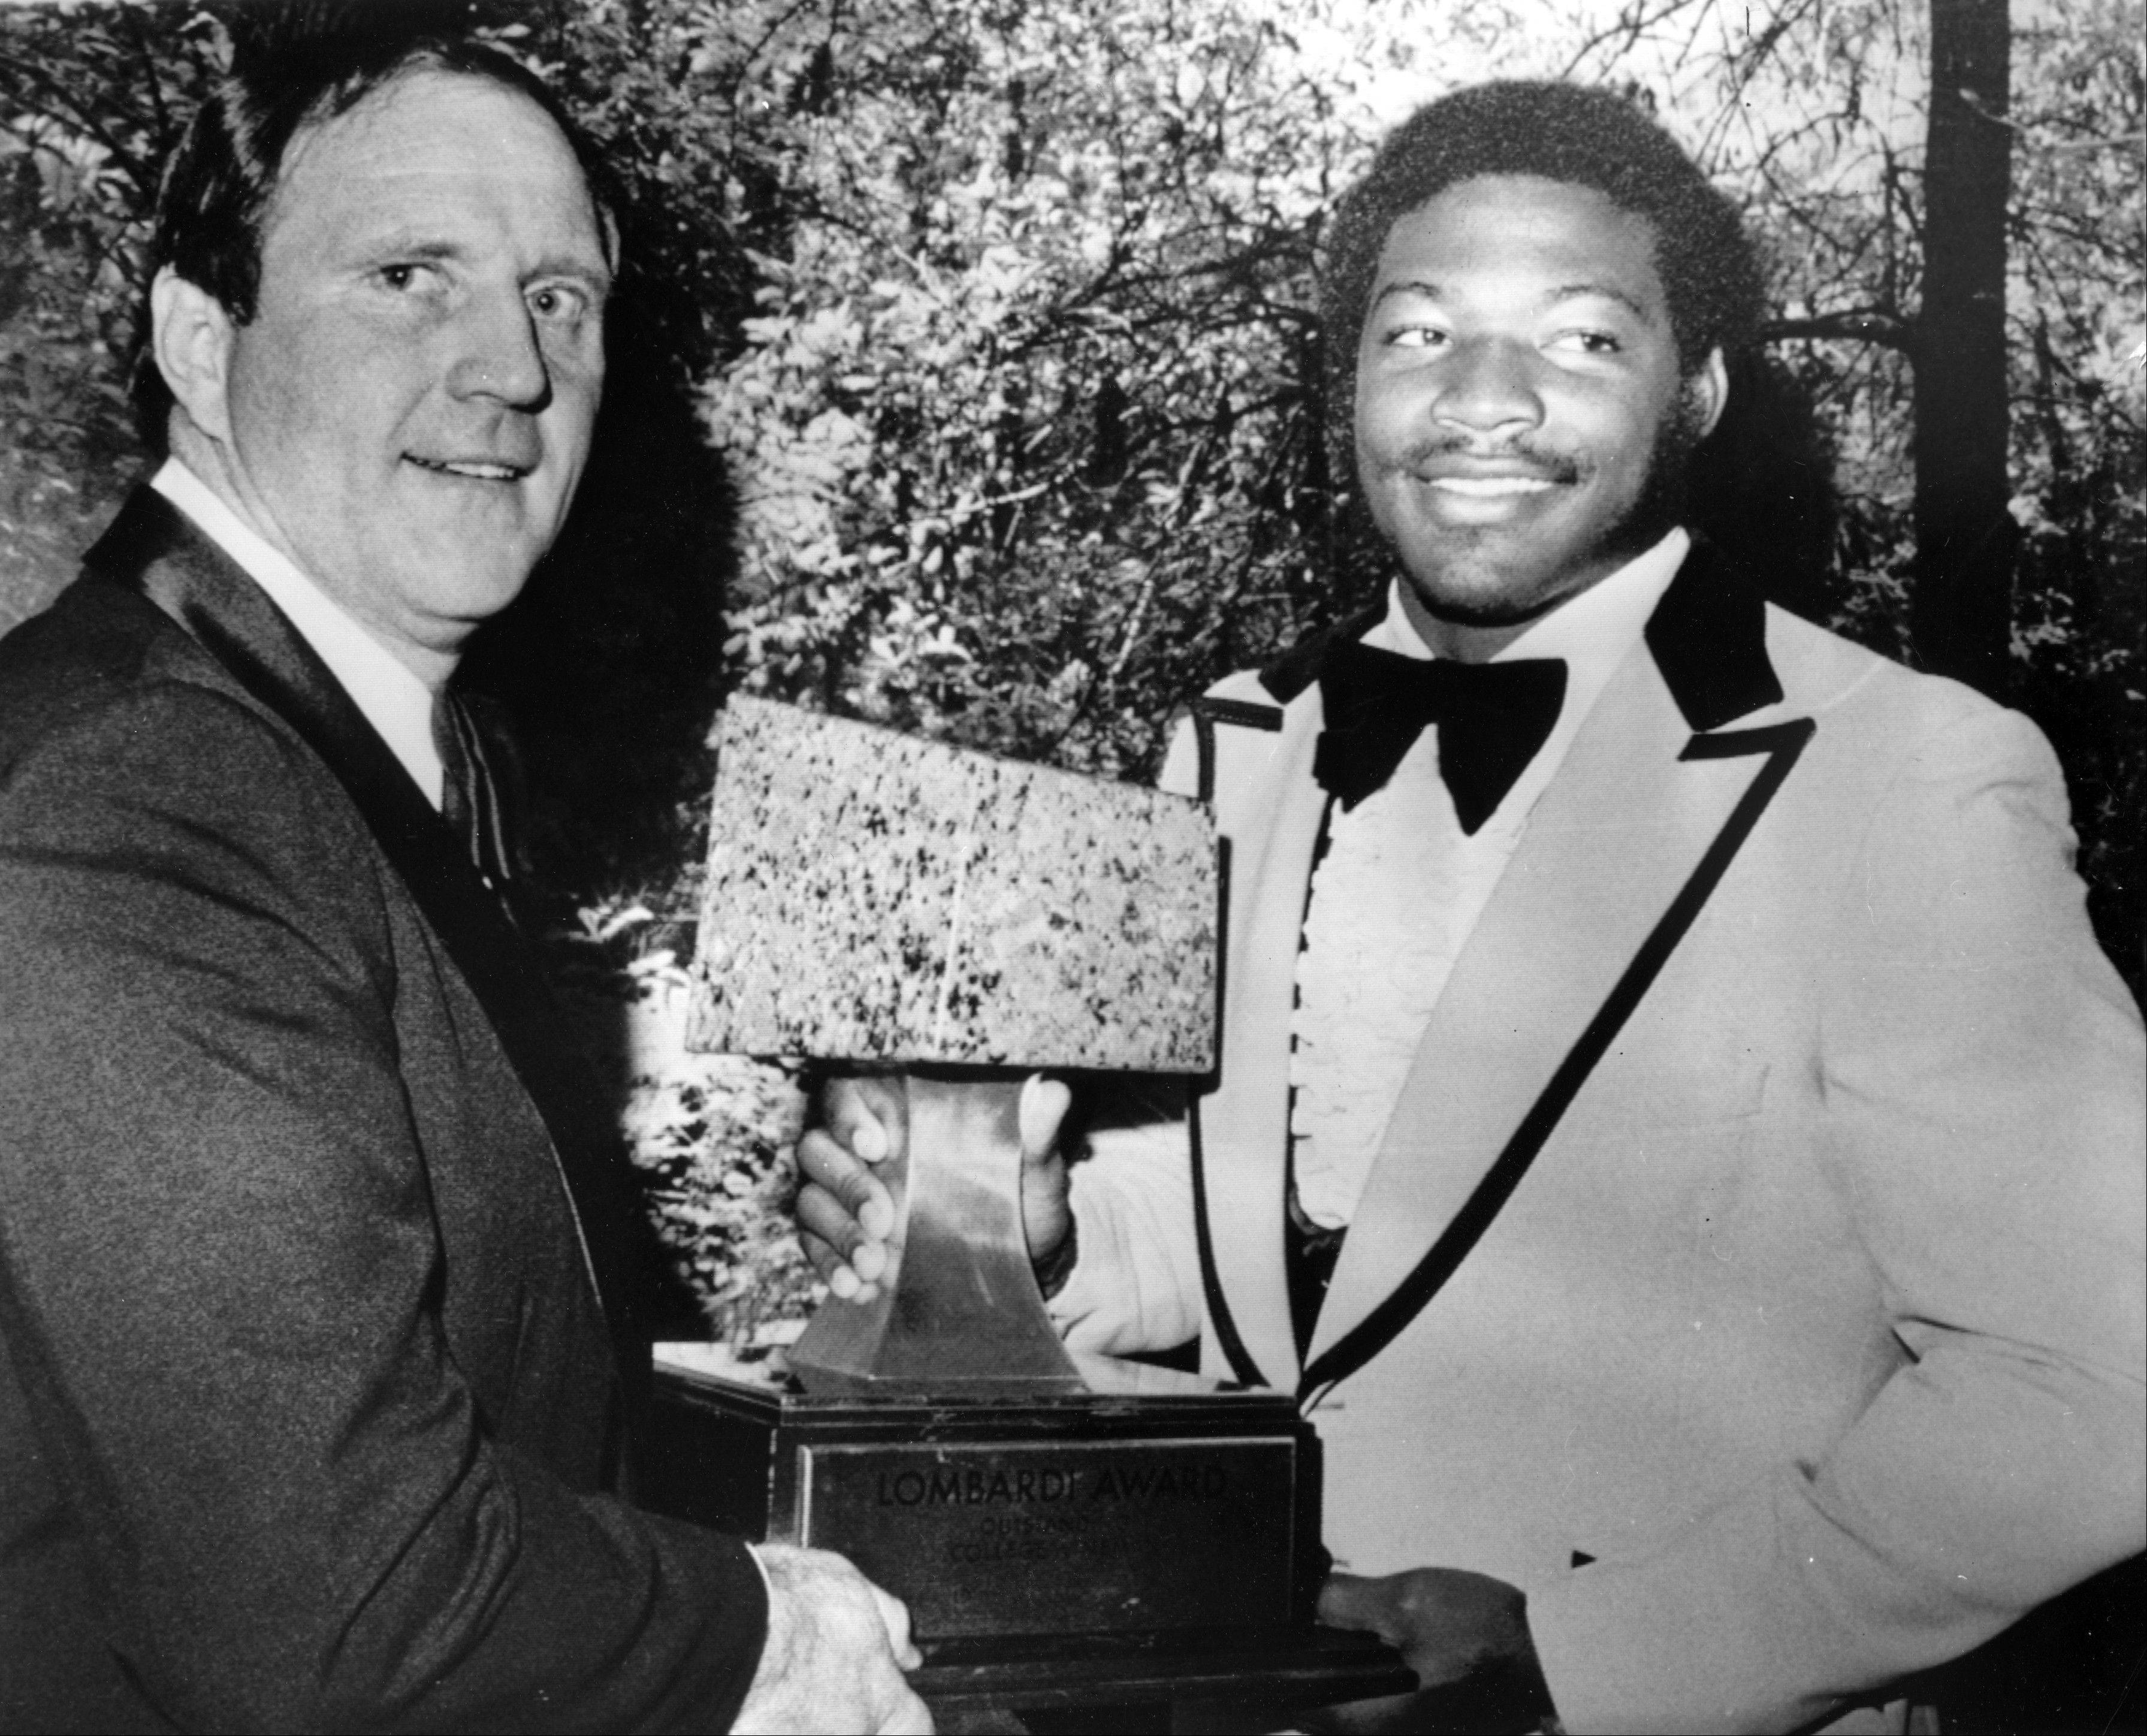 Jack Pardee, left, then coach of the Chicago Bears, presented the Vince Lombardi Award to Lee Roy Selmon of the University of Oklahoma in 1976.